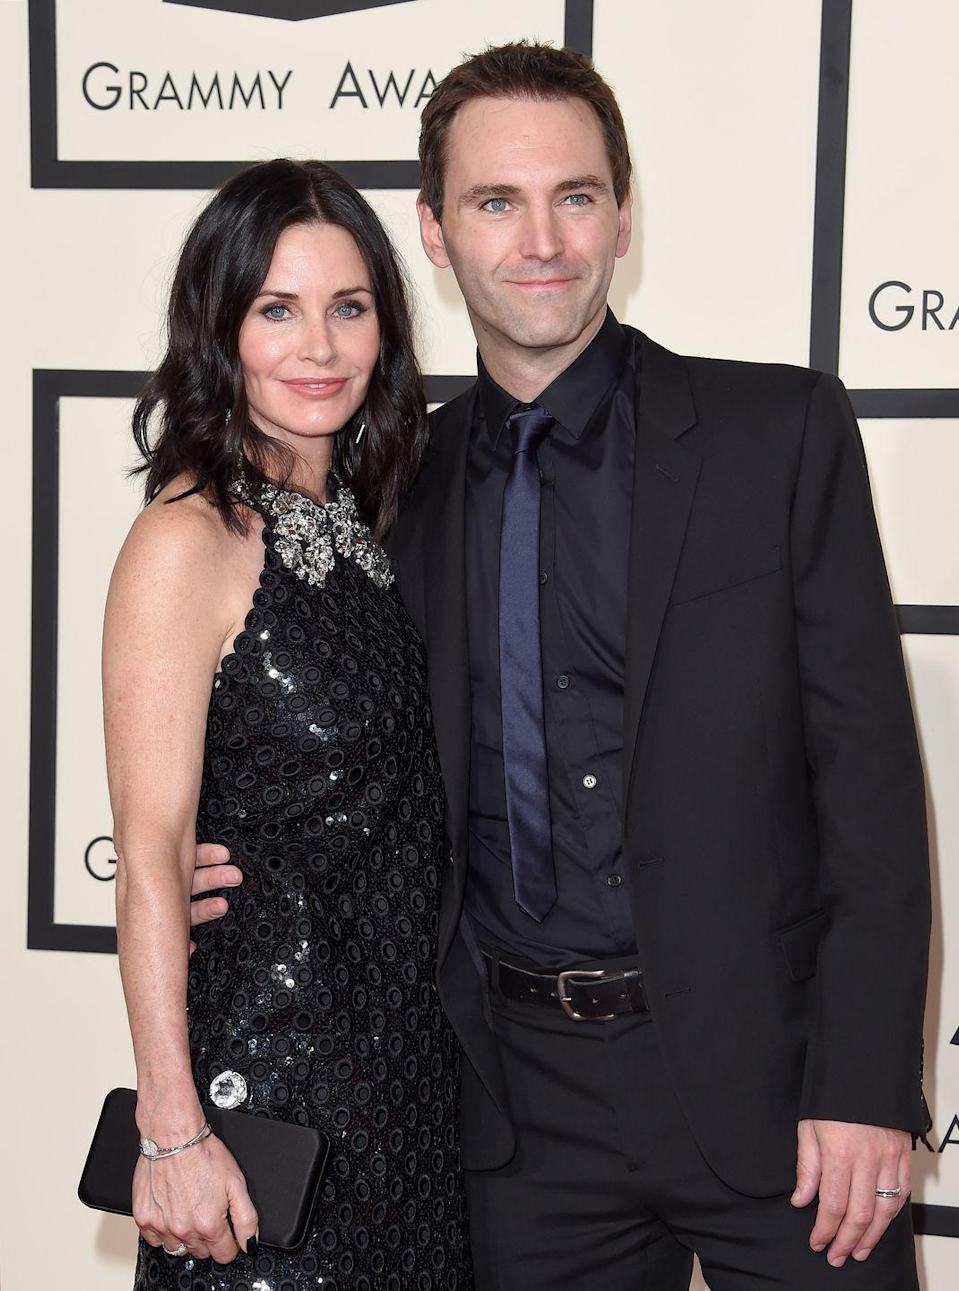 "<p>These two were set up by Grammy-winning artist Ed Sheeran of all people. The pair got engaged but eventually split.</p><p>""My housemate [Snow Patrol's Johnny McDaid] who I've lived with for a year, I introduced him to Courteney Cox. They started dating and [are] crazy about each other,"" he told <a href=""http://uk.omg.yahoo.com/gossip/the-bike-shed/ed-sheeran-admits-passed-out-drunk-jennifer-anistons-house-flatmate-snow-patrol-johnny-mcdaid-courteney-cox-exclusive-164856545.html?"" data-ylk=""slk:Yahoo;outcm:mb_qualified_link;_E:mb_qualified_link;ct:story;"" class=""link rapid-noclick-resp yahoo-link"">Yahoo</a>.</p>"